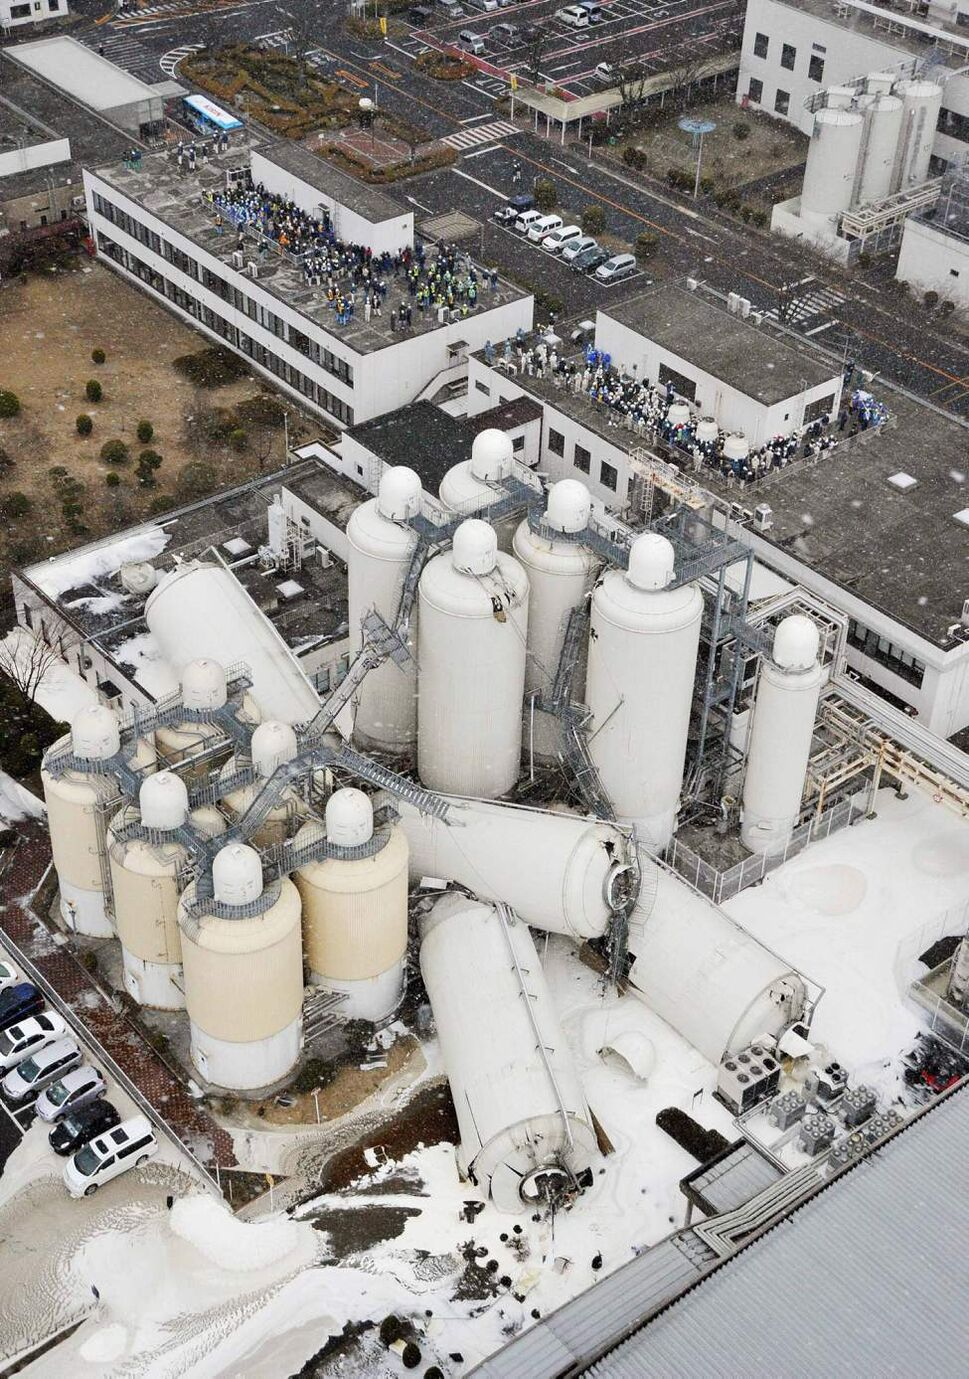 Parts of a beer factory's facilities are collapsed as the employees gather on the rooftops after a powerful earthquake in Sendai, Miyagi prefecture (state), Japan, Friday, March 11, 2011.  The largest earthquake in Japan's recorded history slammed the eastern coast Friday. (AP Photo/Kyodo News)